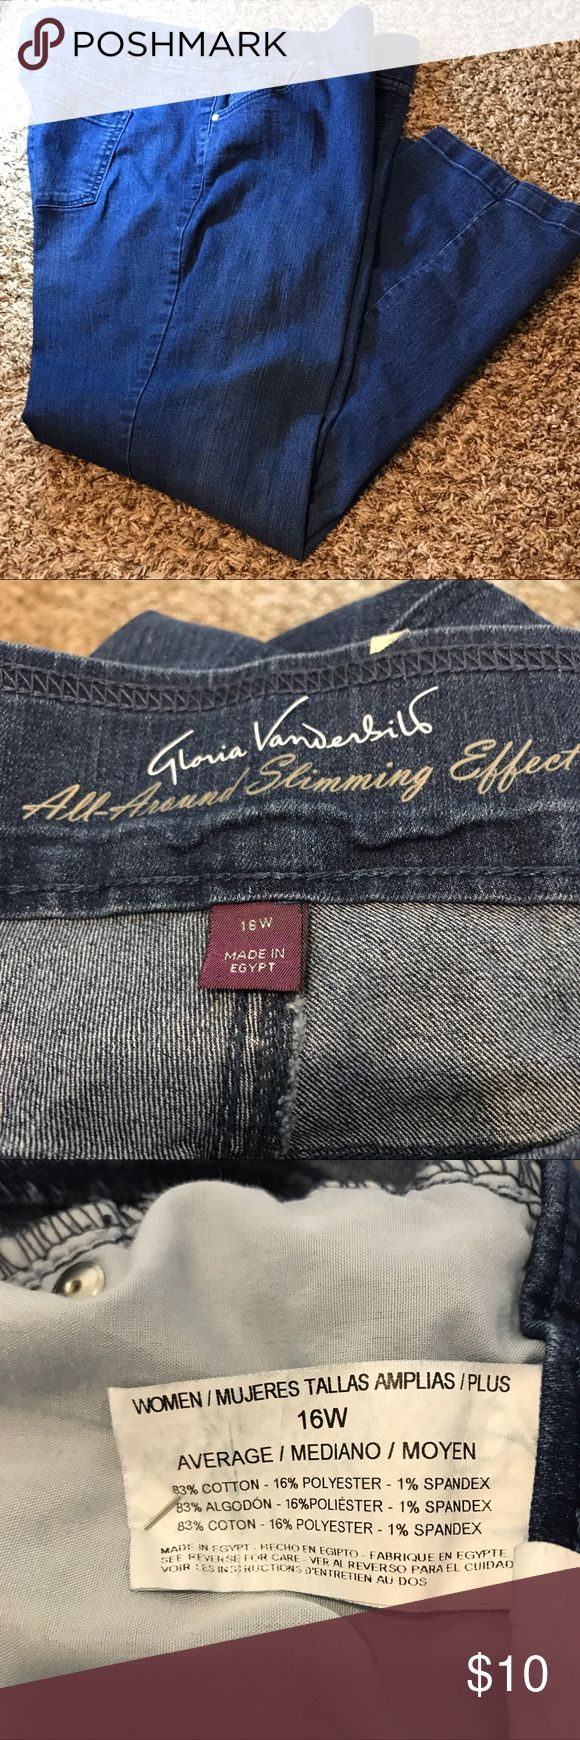 Nyc apartment cooper and vanderbilt at carter s funeral service above - Gloria Vanderbilt Blue Jeans Size 16